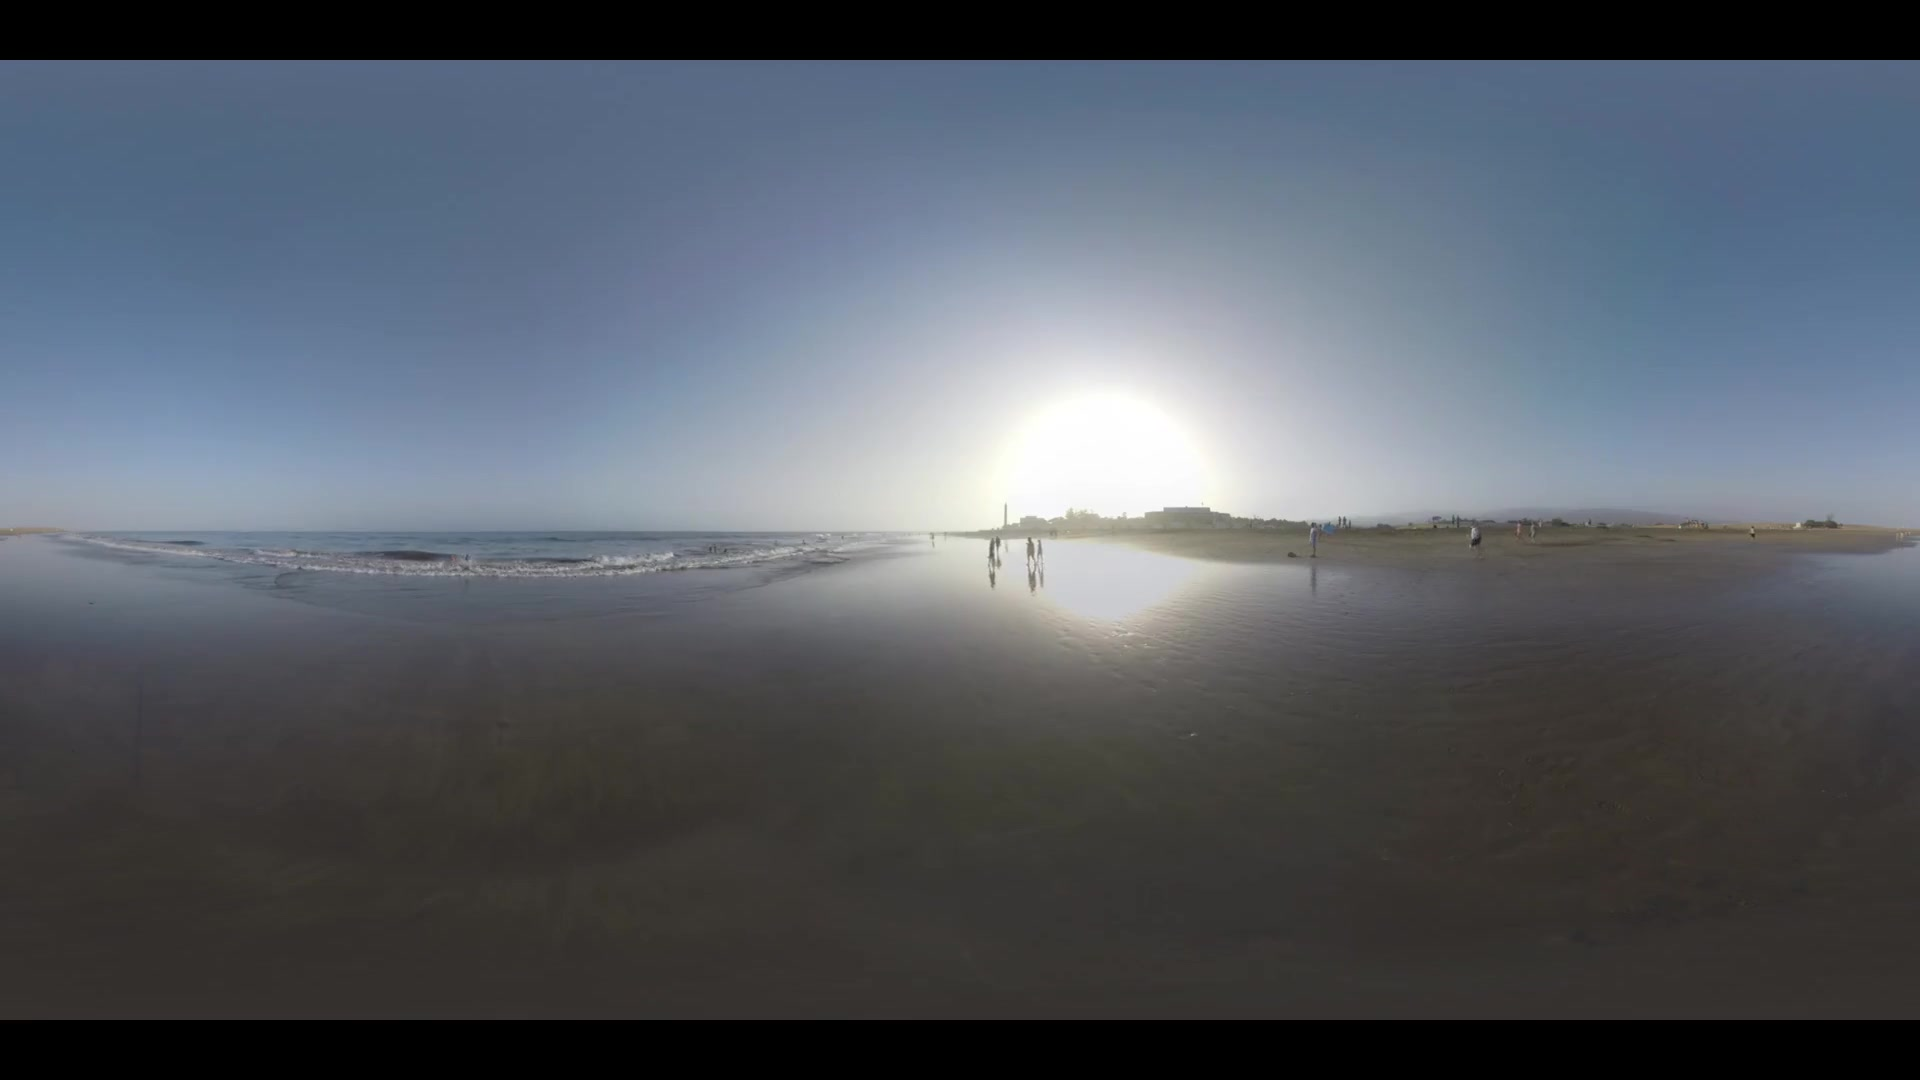 GRAN CANARIA, CANARY ISLANDS - AUGUST 02, 2016: 360 VR Video. Ocean beach line with walking people. Scene at sunset with distant Maspalomas Dunes and resort. Vacation on Gran Canaria